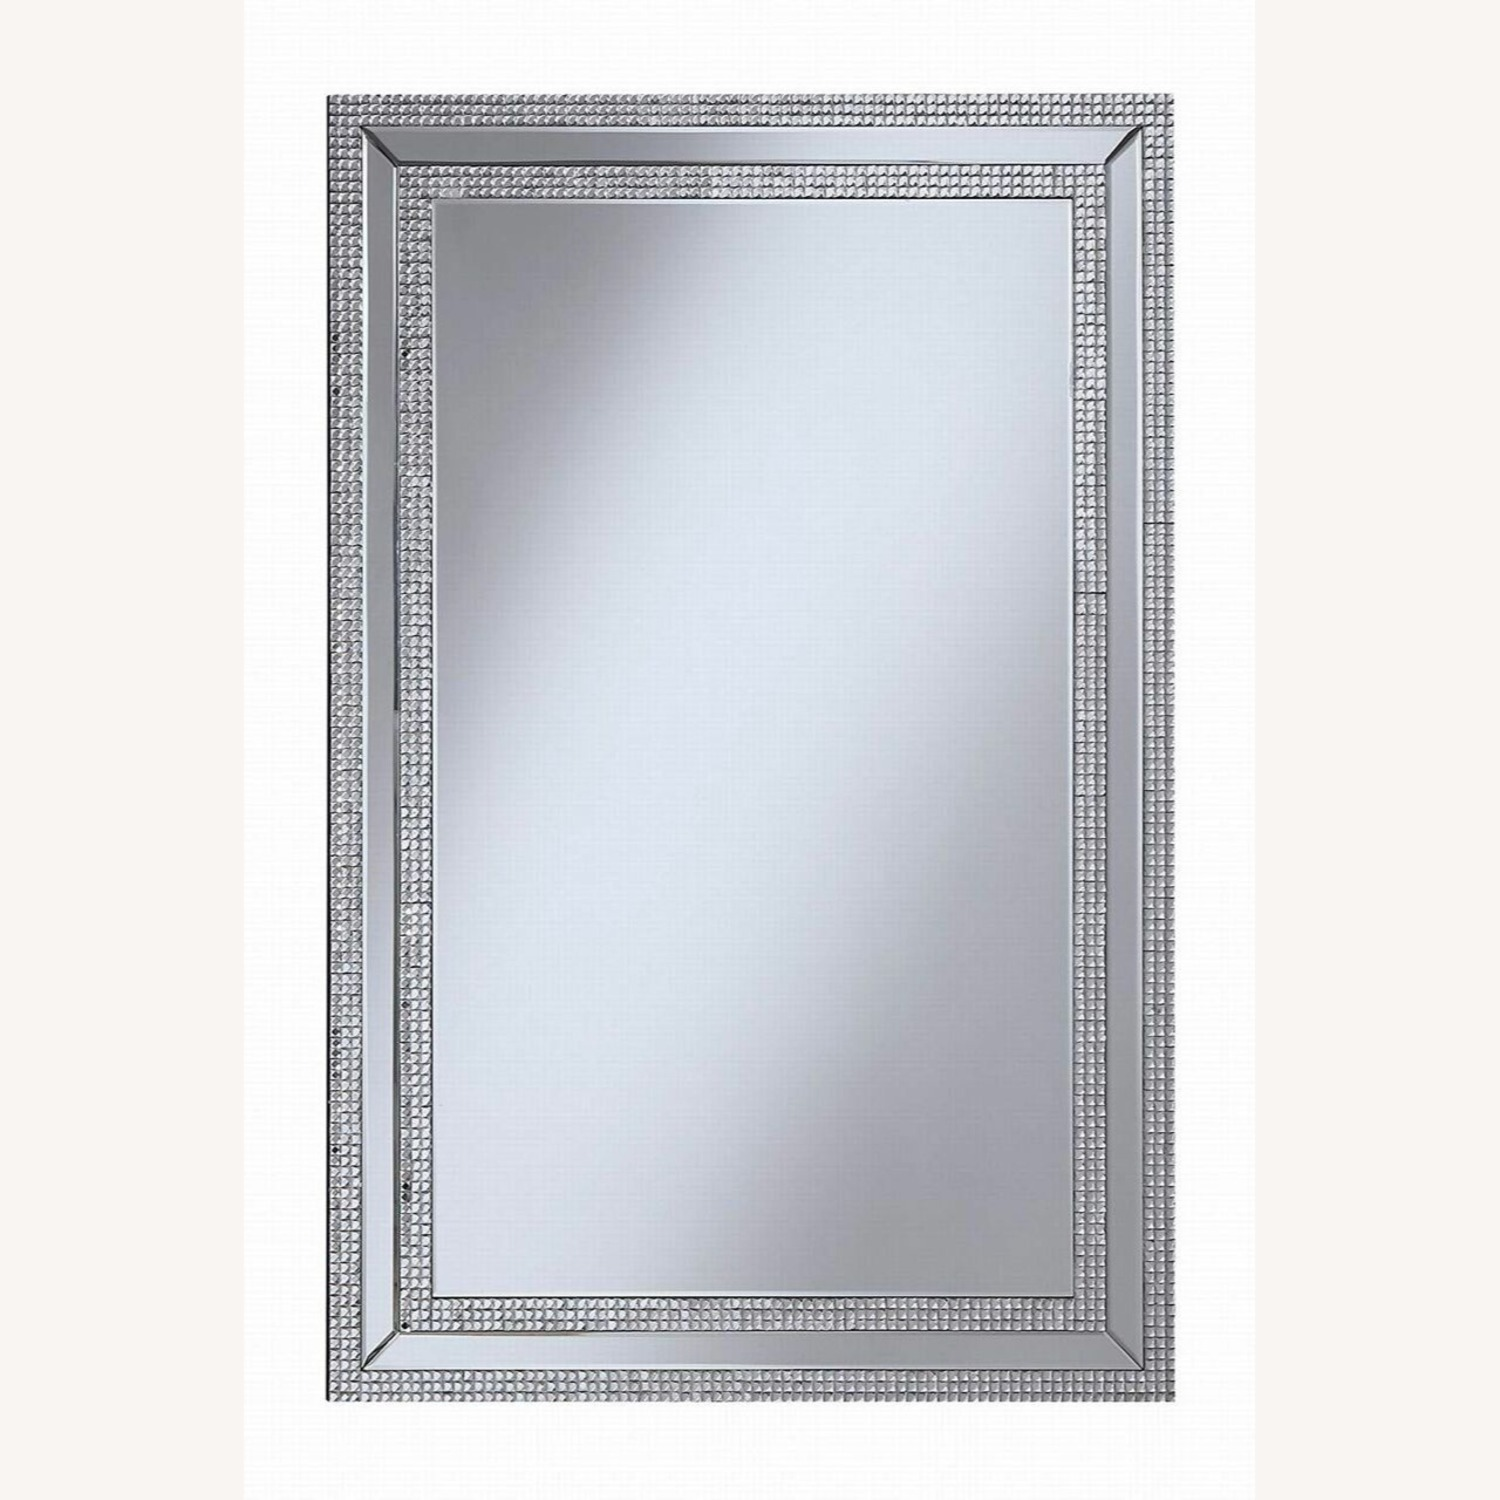 Wall Mirror In Clear Finish W/ Rows of Jewels - image-2